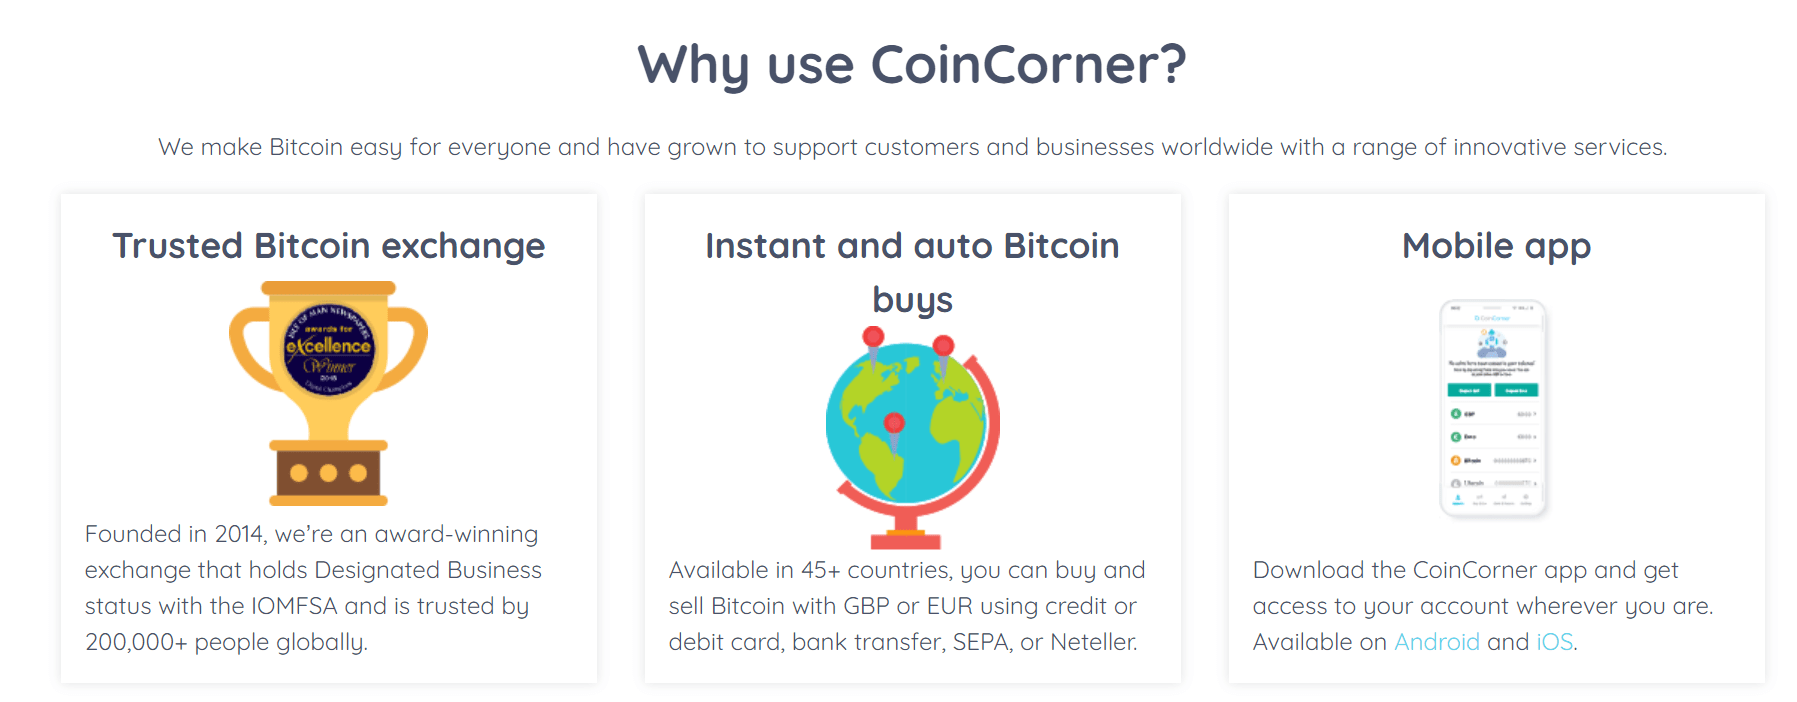 coincorner review 2020